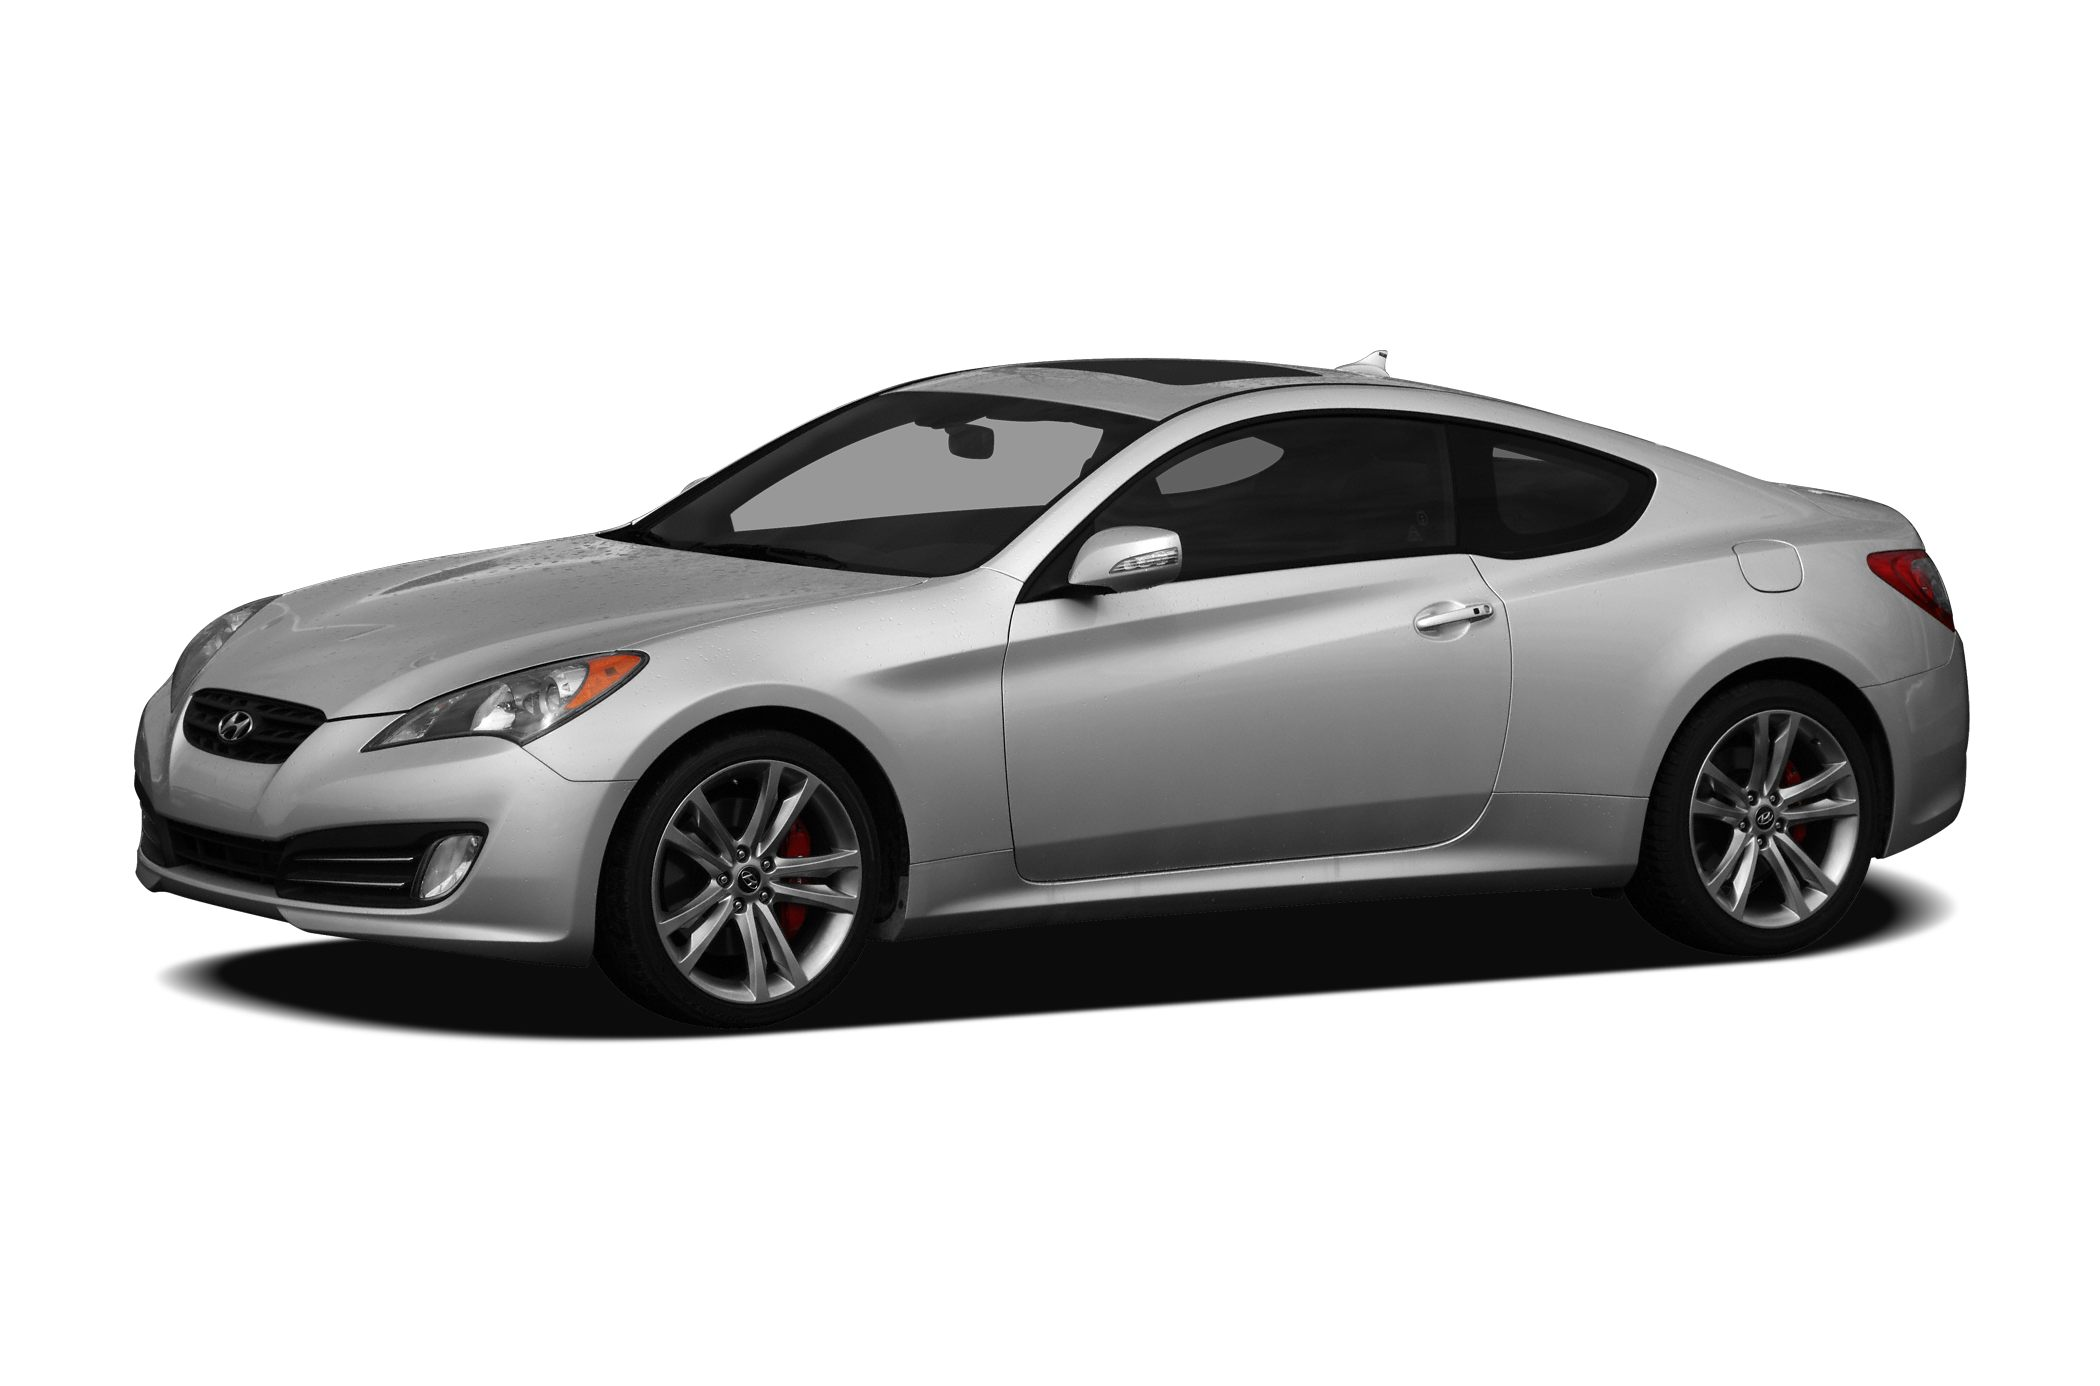 2010 Hyundai Genesis Coupe 3.8 Grand Touring Coupe for sale in Belton for $15,900 with 43,372 miles